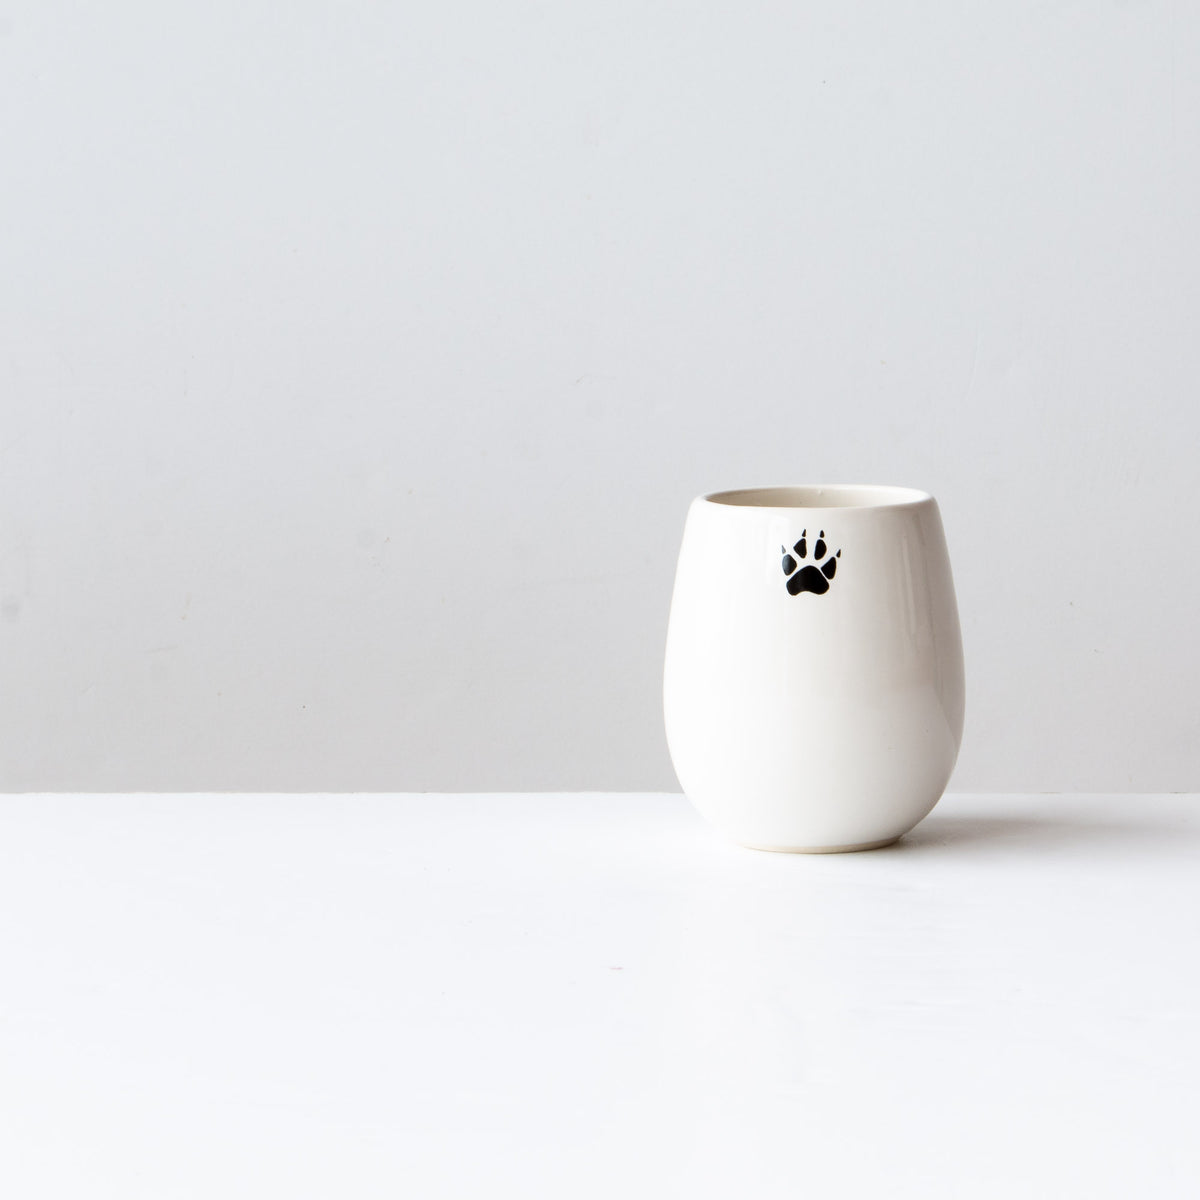 Rear View - The Wolf - Handthrown Porcelain Wine Tumbler / Glass - Sold by Chic & Basta